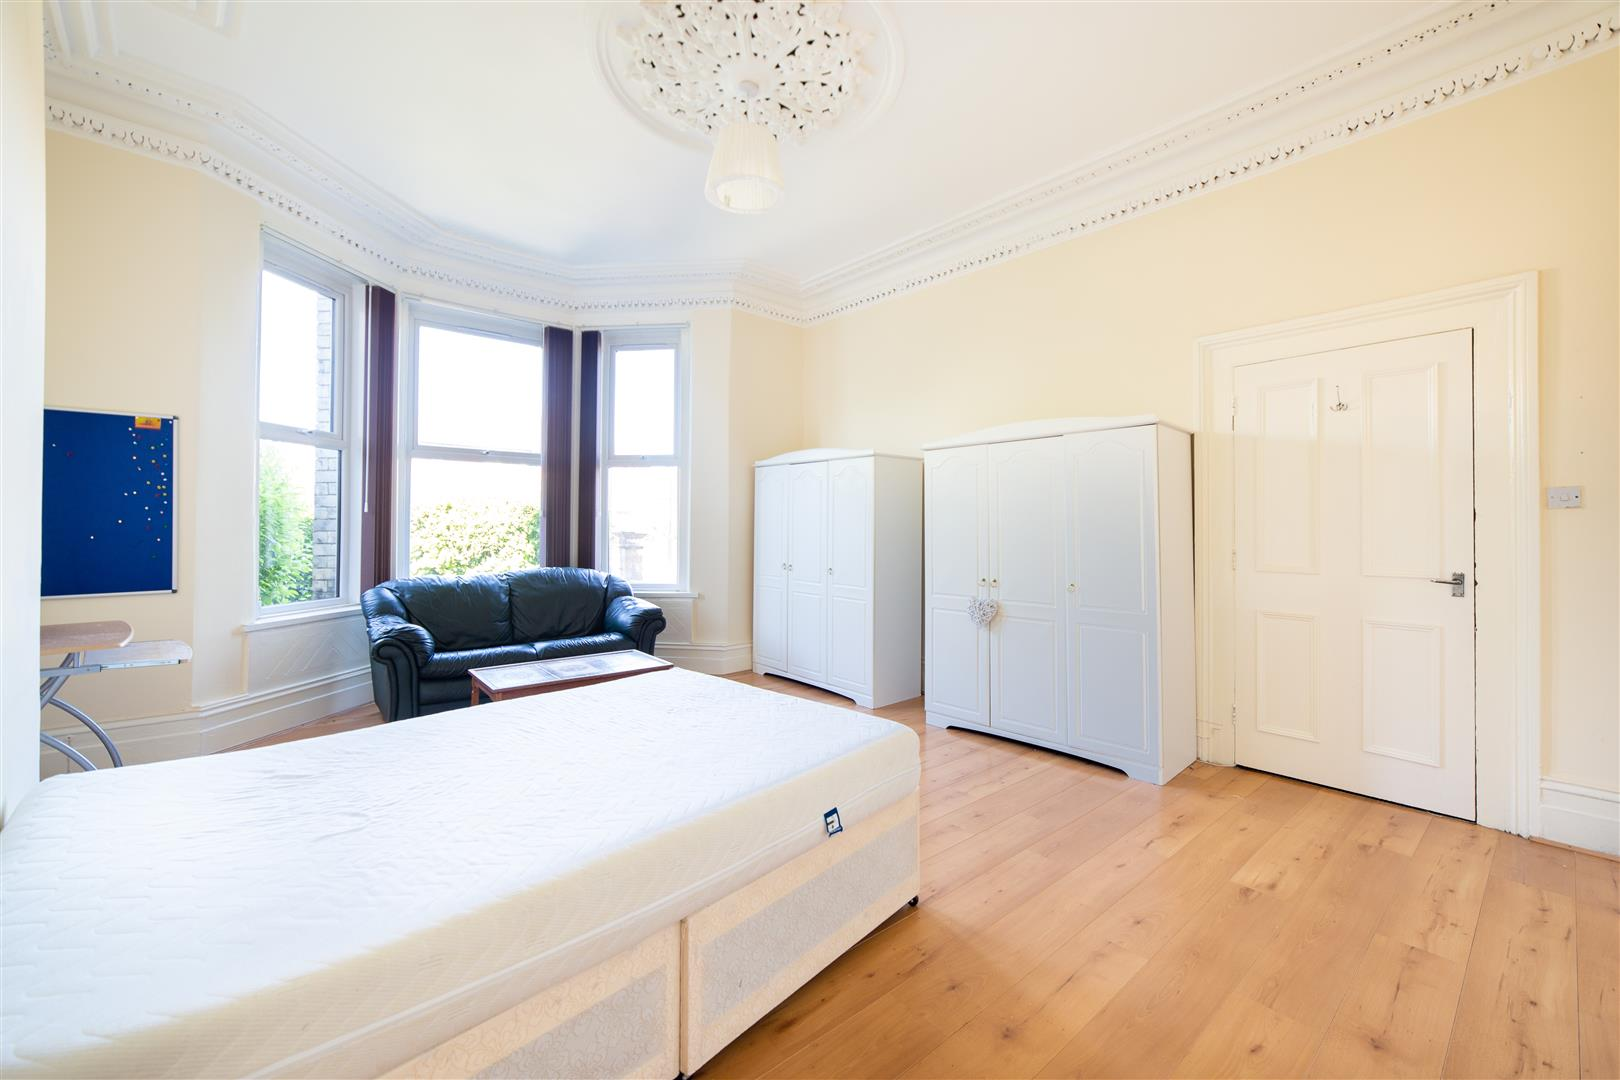 2 bed flat to rent in Newcastle Upon Tyne, NE6 5JT  - Property Image 4